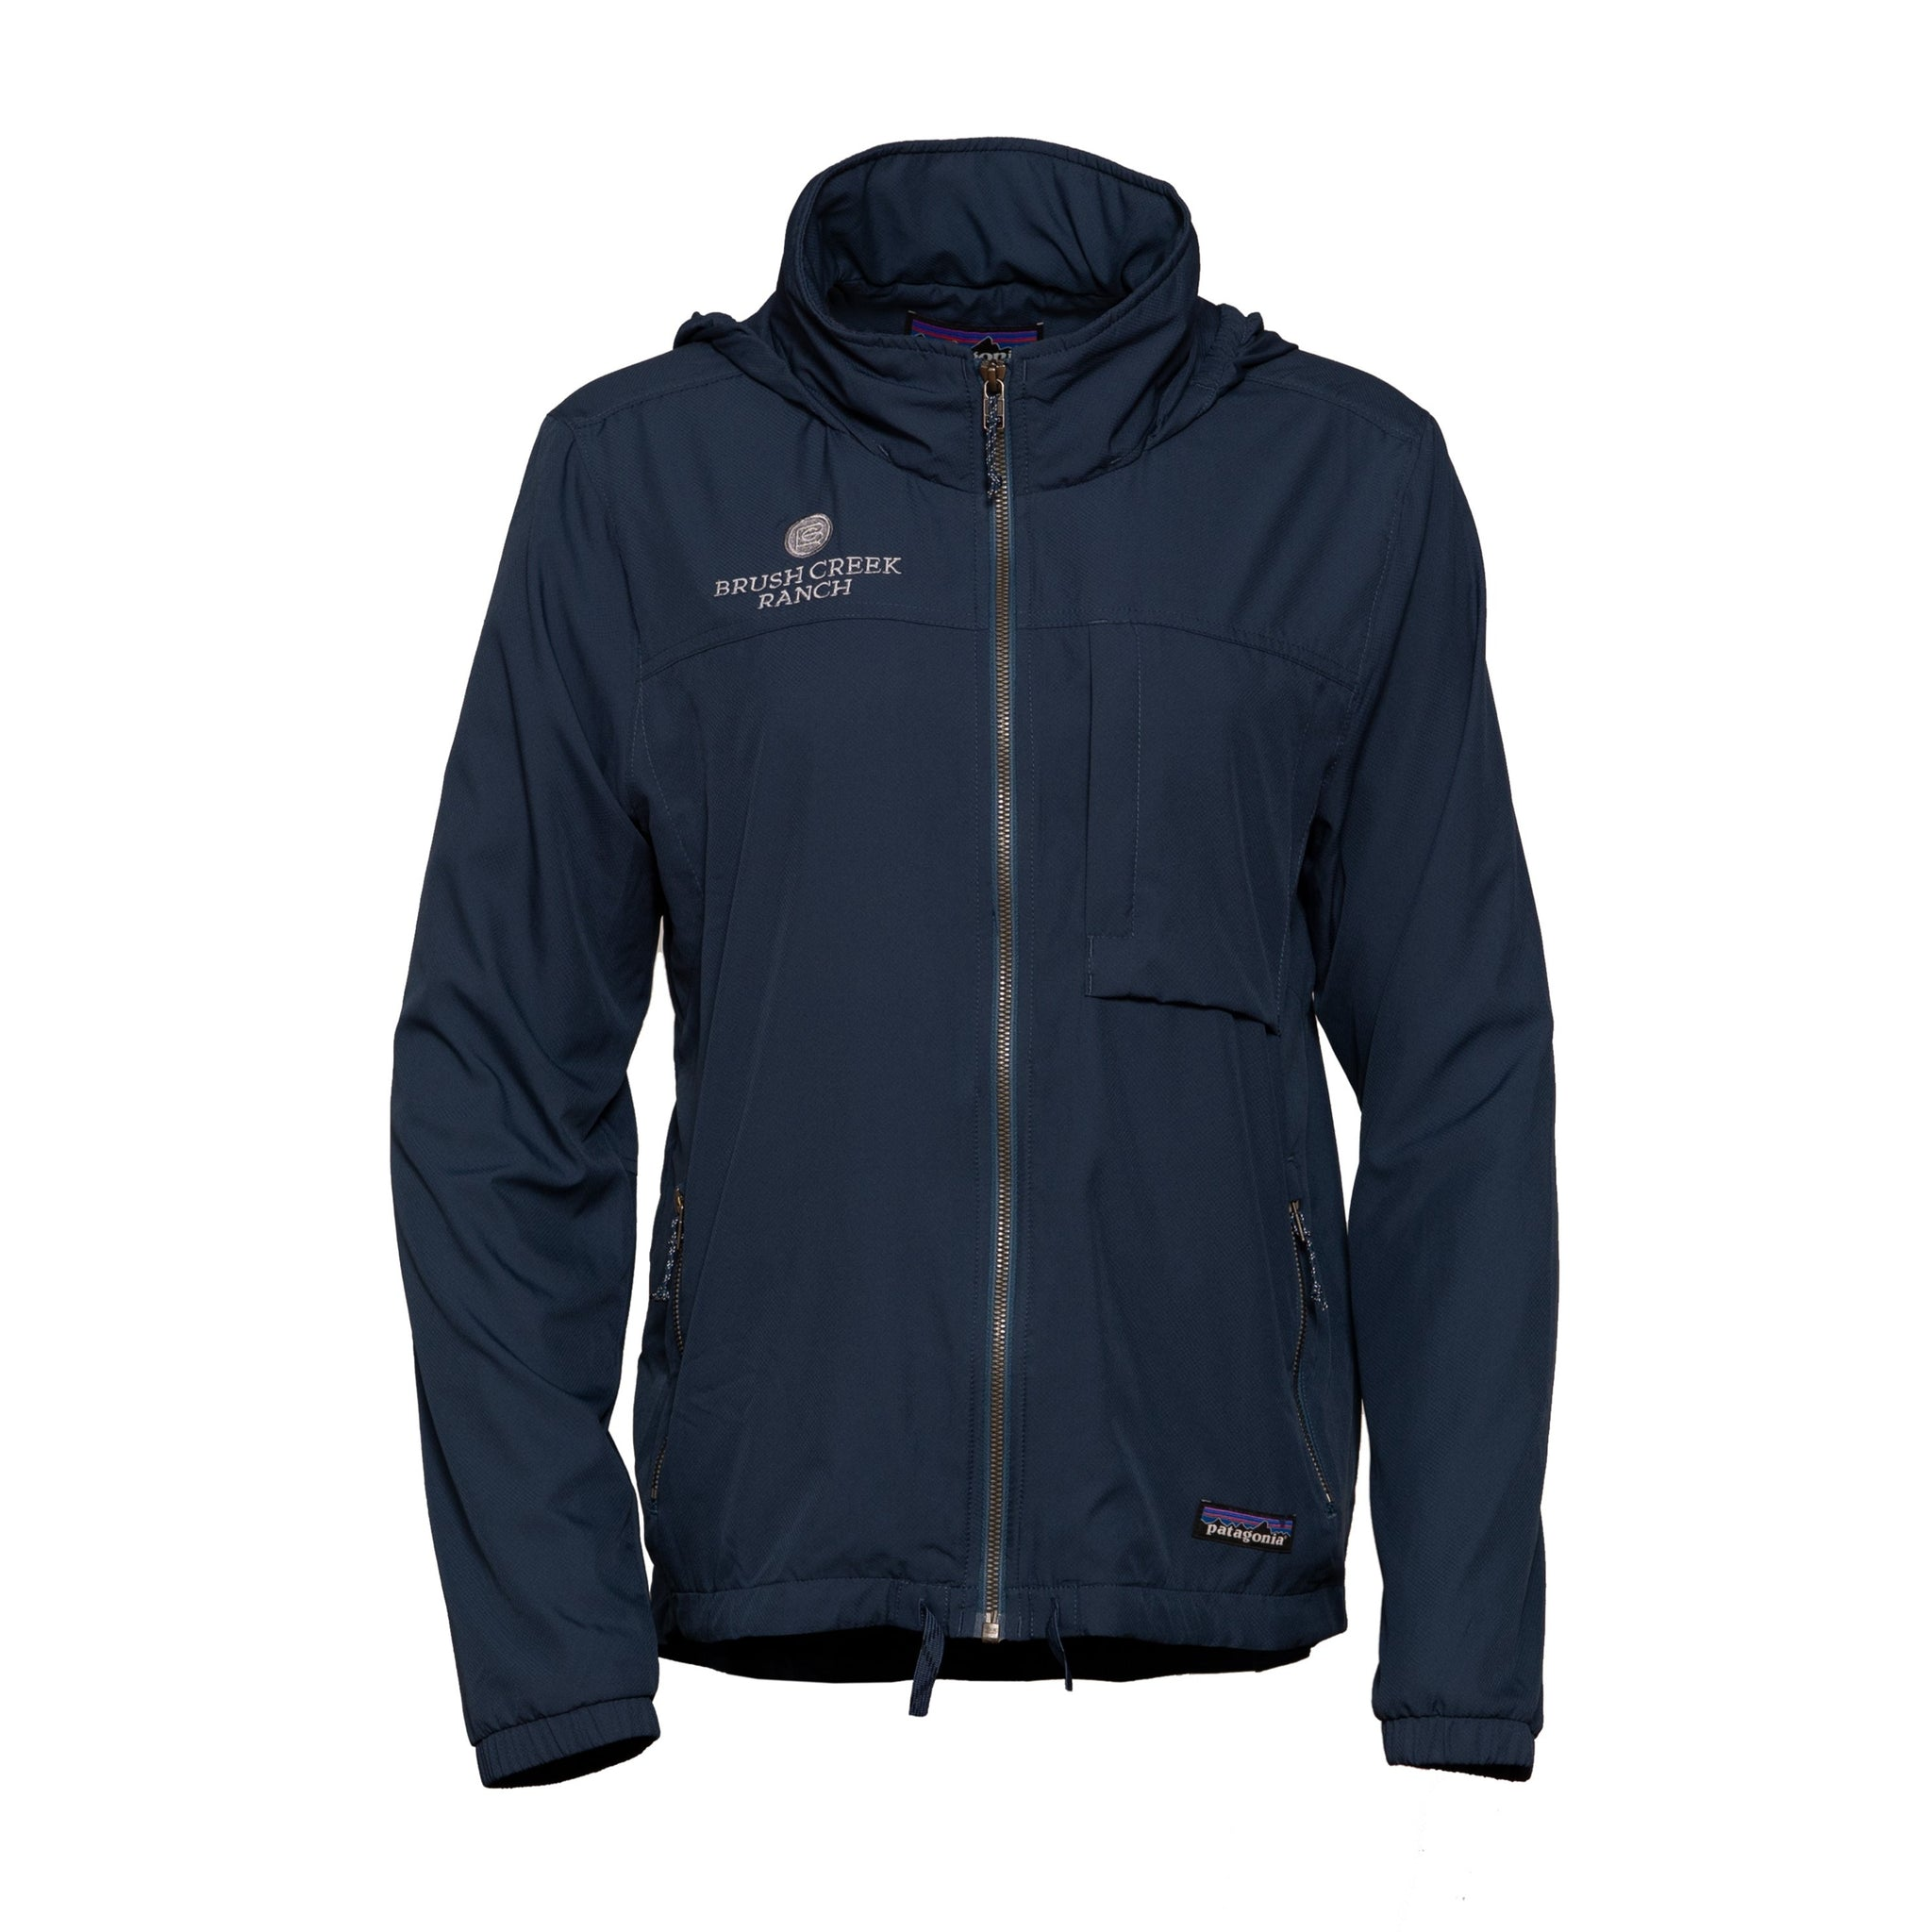 Women's Mountain View Windbreaker Jacket